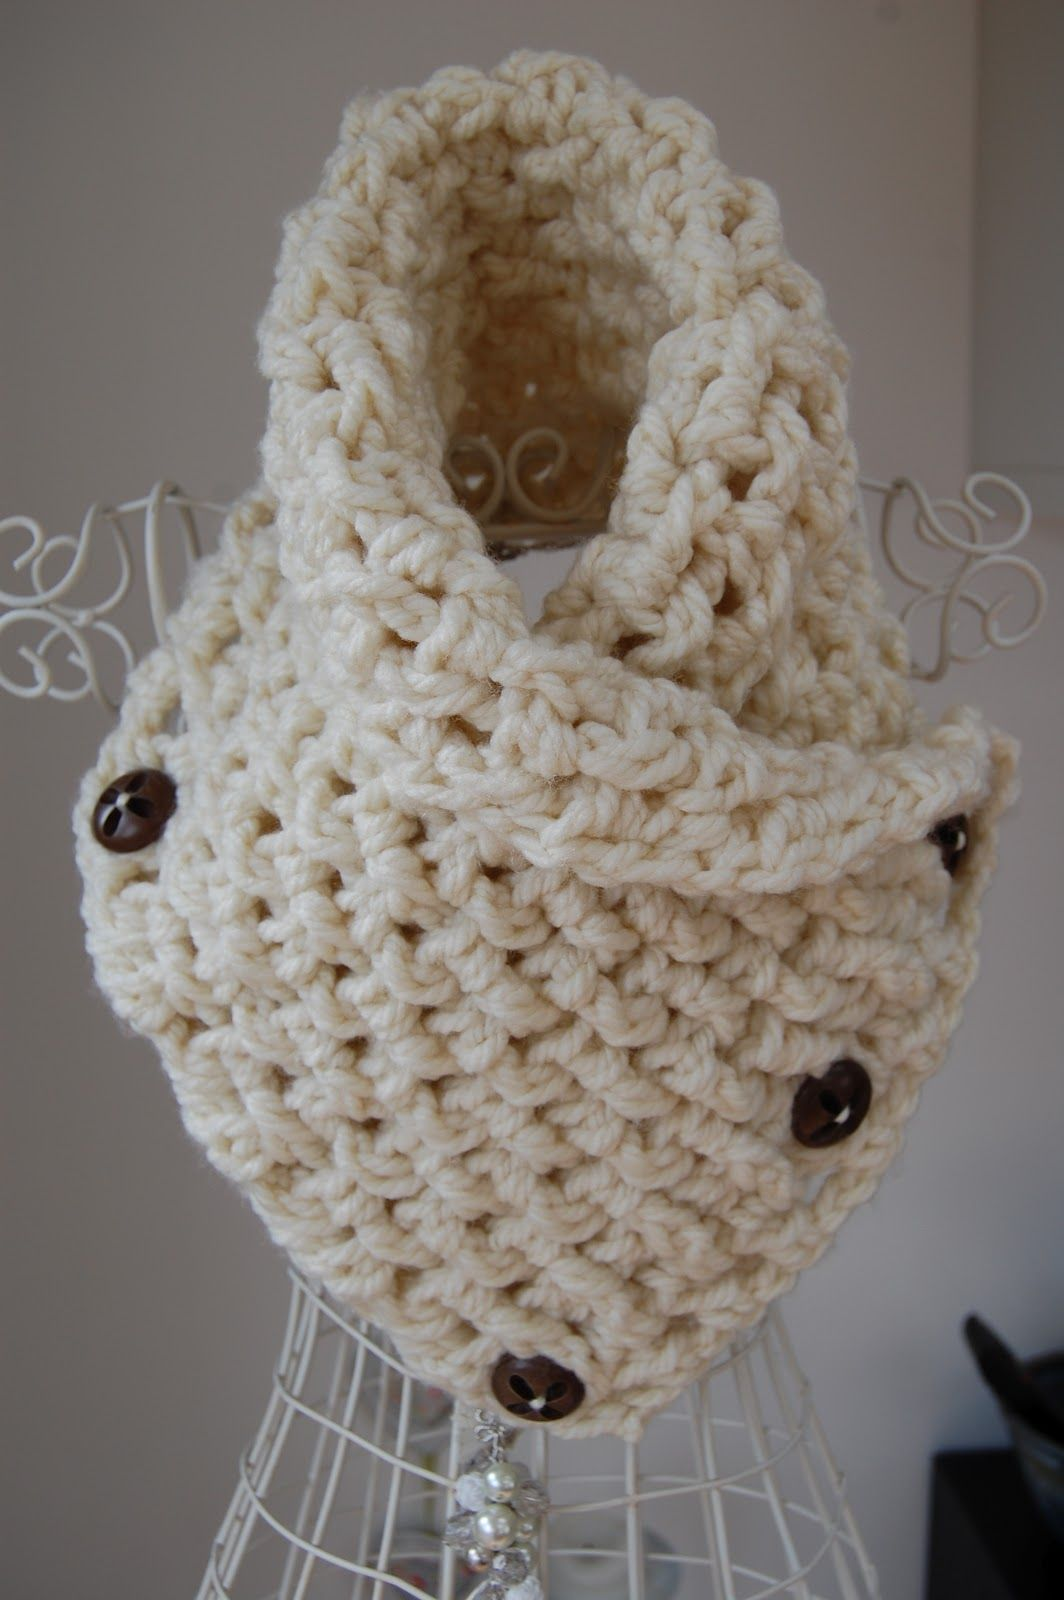 Free crochet neck warmer patterns crafty red lattice crochet crafty red lattice crochet neck warmer sz 10 needles in length and bulky yarnwool if you can wear it bankloansurffo Choice Image